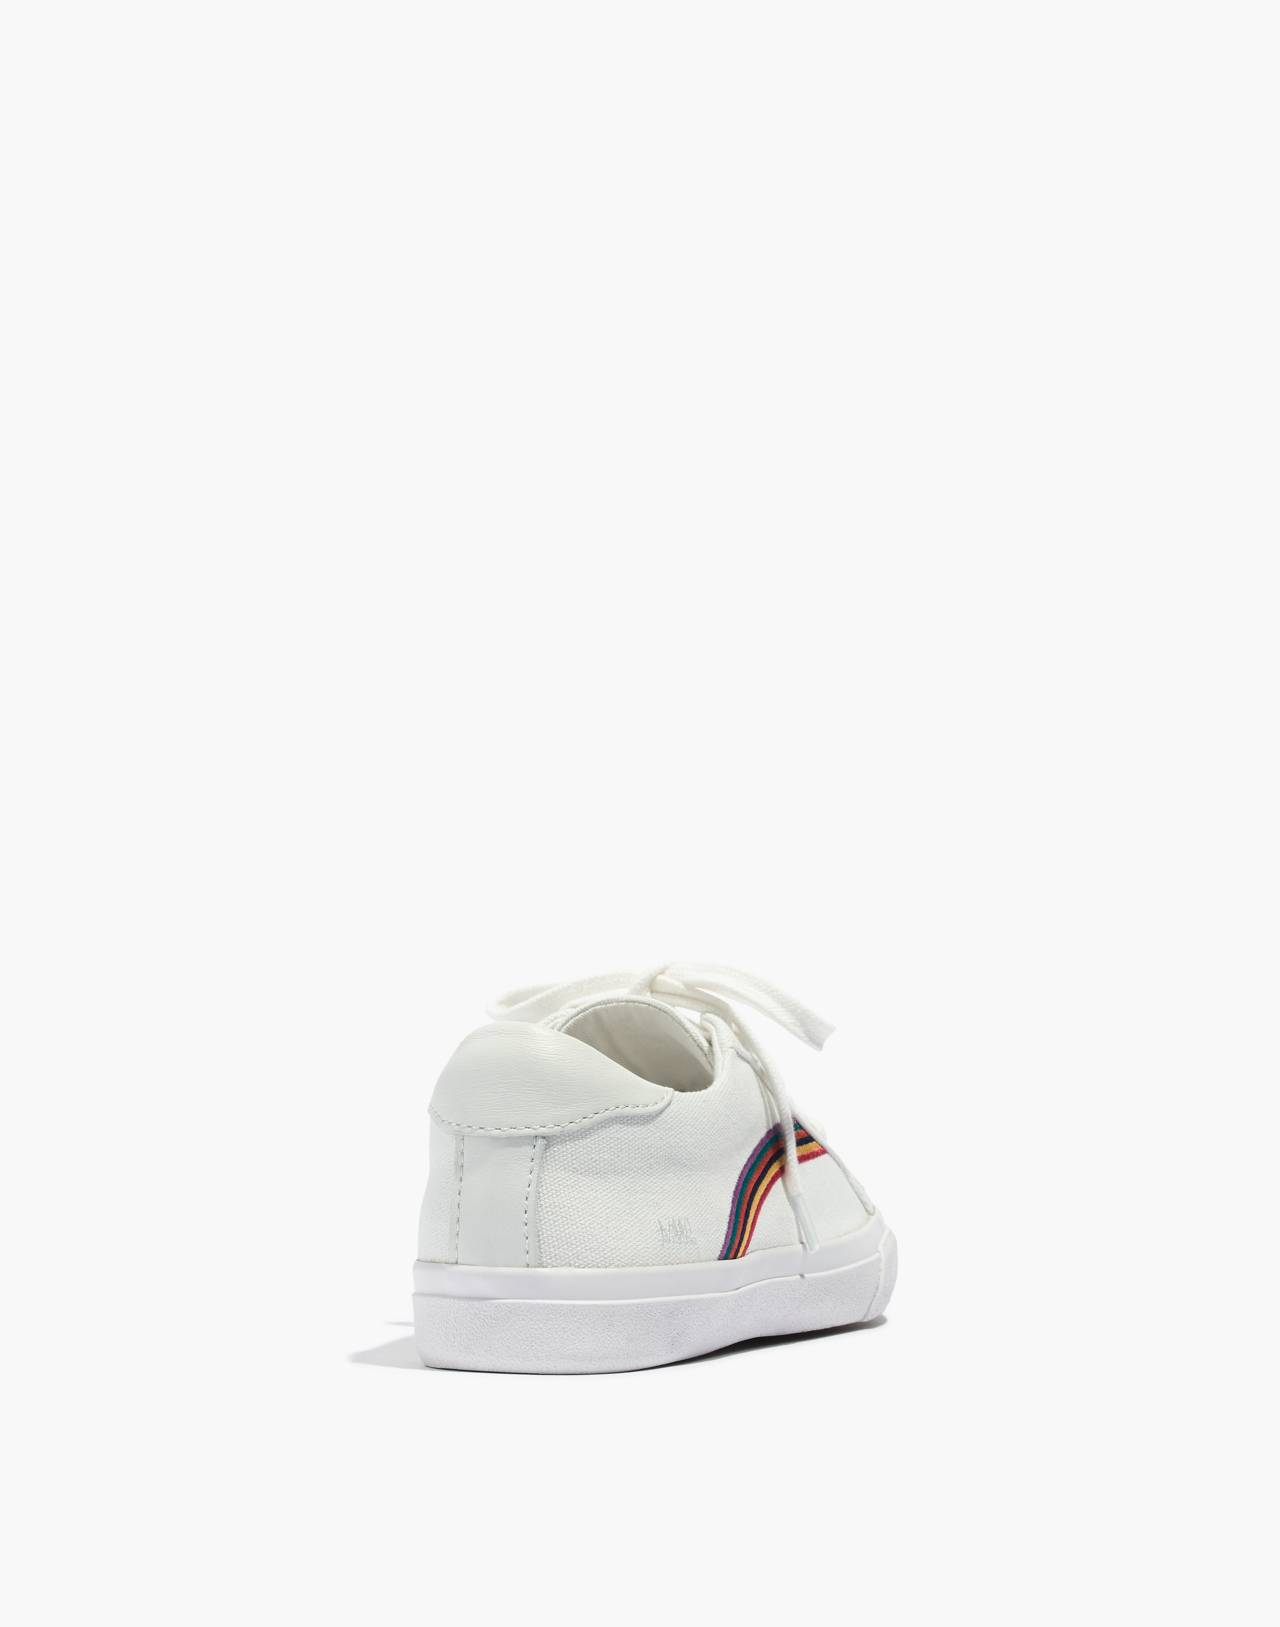 Women's Sidewalk Low-Top Sneakers in Rainbow Embroidered Canvas in off white/off white image 3